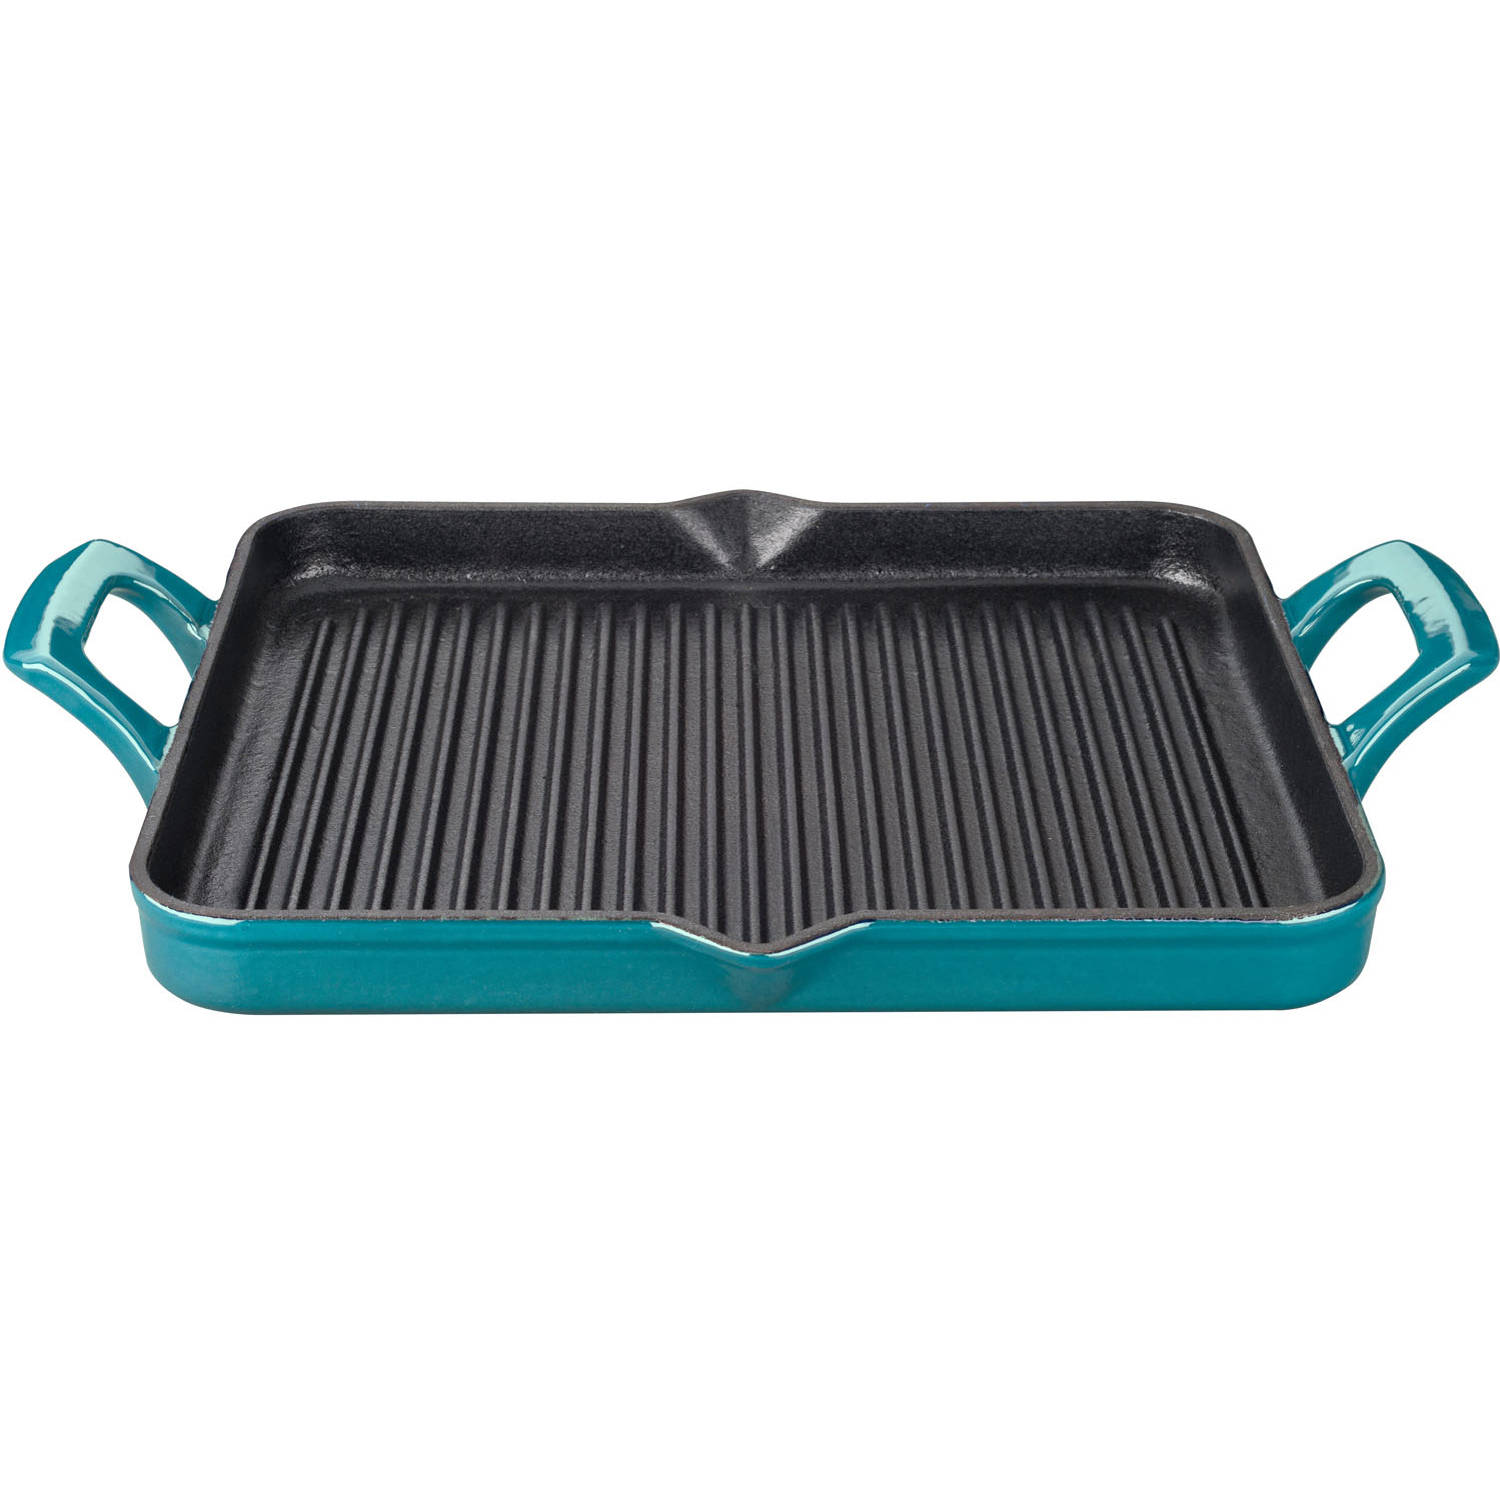 La Cuisine Rectangular 1 Qt. Cast Iron Grill Pan with Enamel Finish